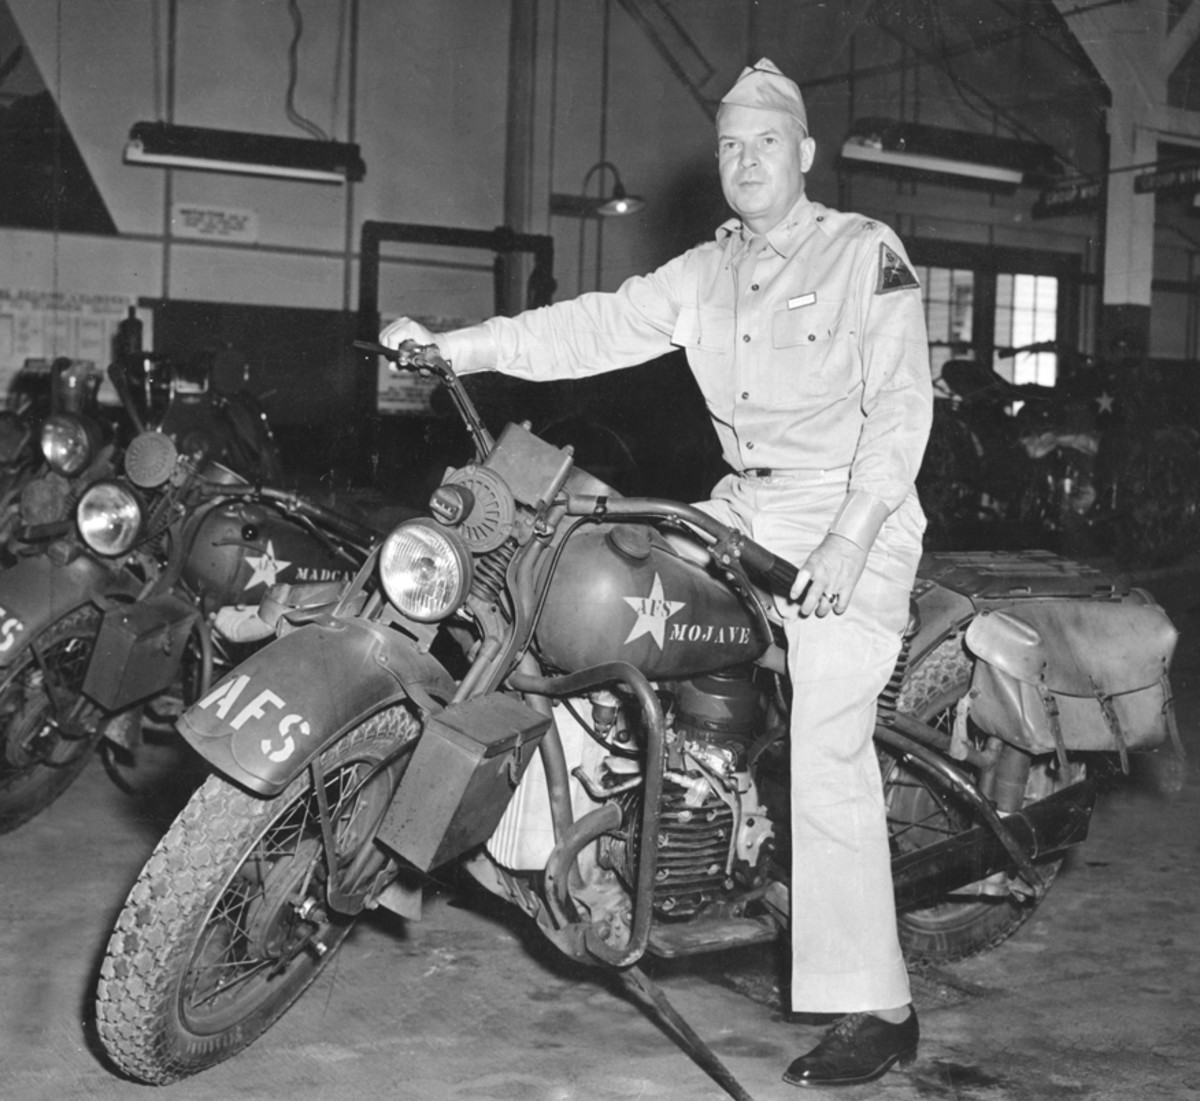 Lt. John E. Harley, director of motorcycle training at Fort Knox in 1942, astride a Harley XA. The horizontally opposed engine is visible just forward of his leg.